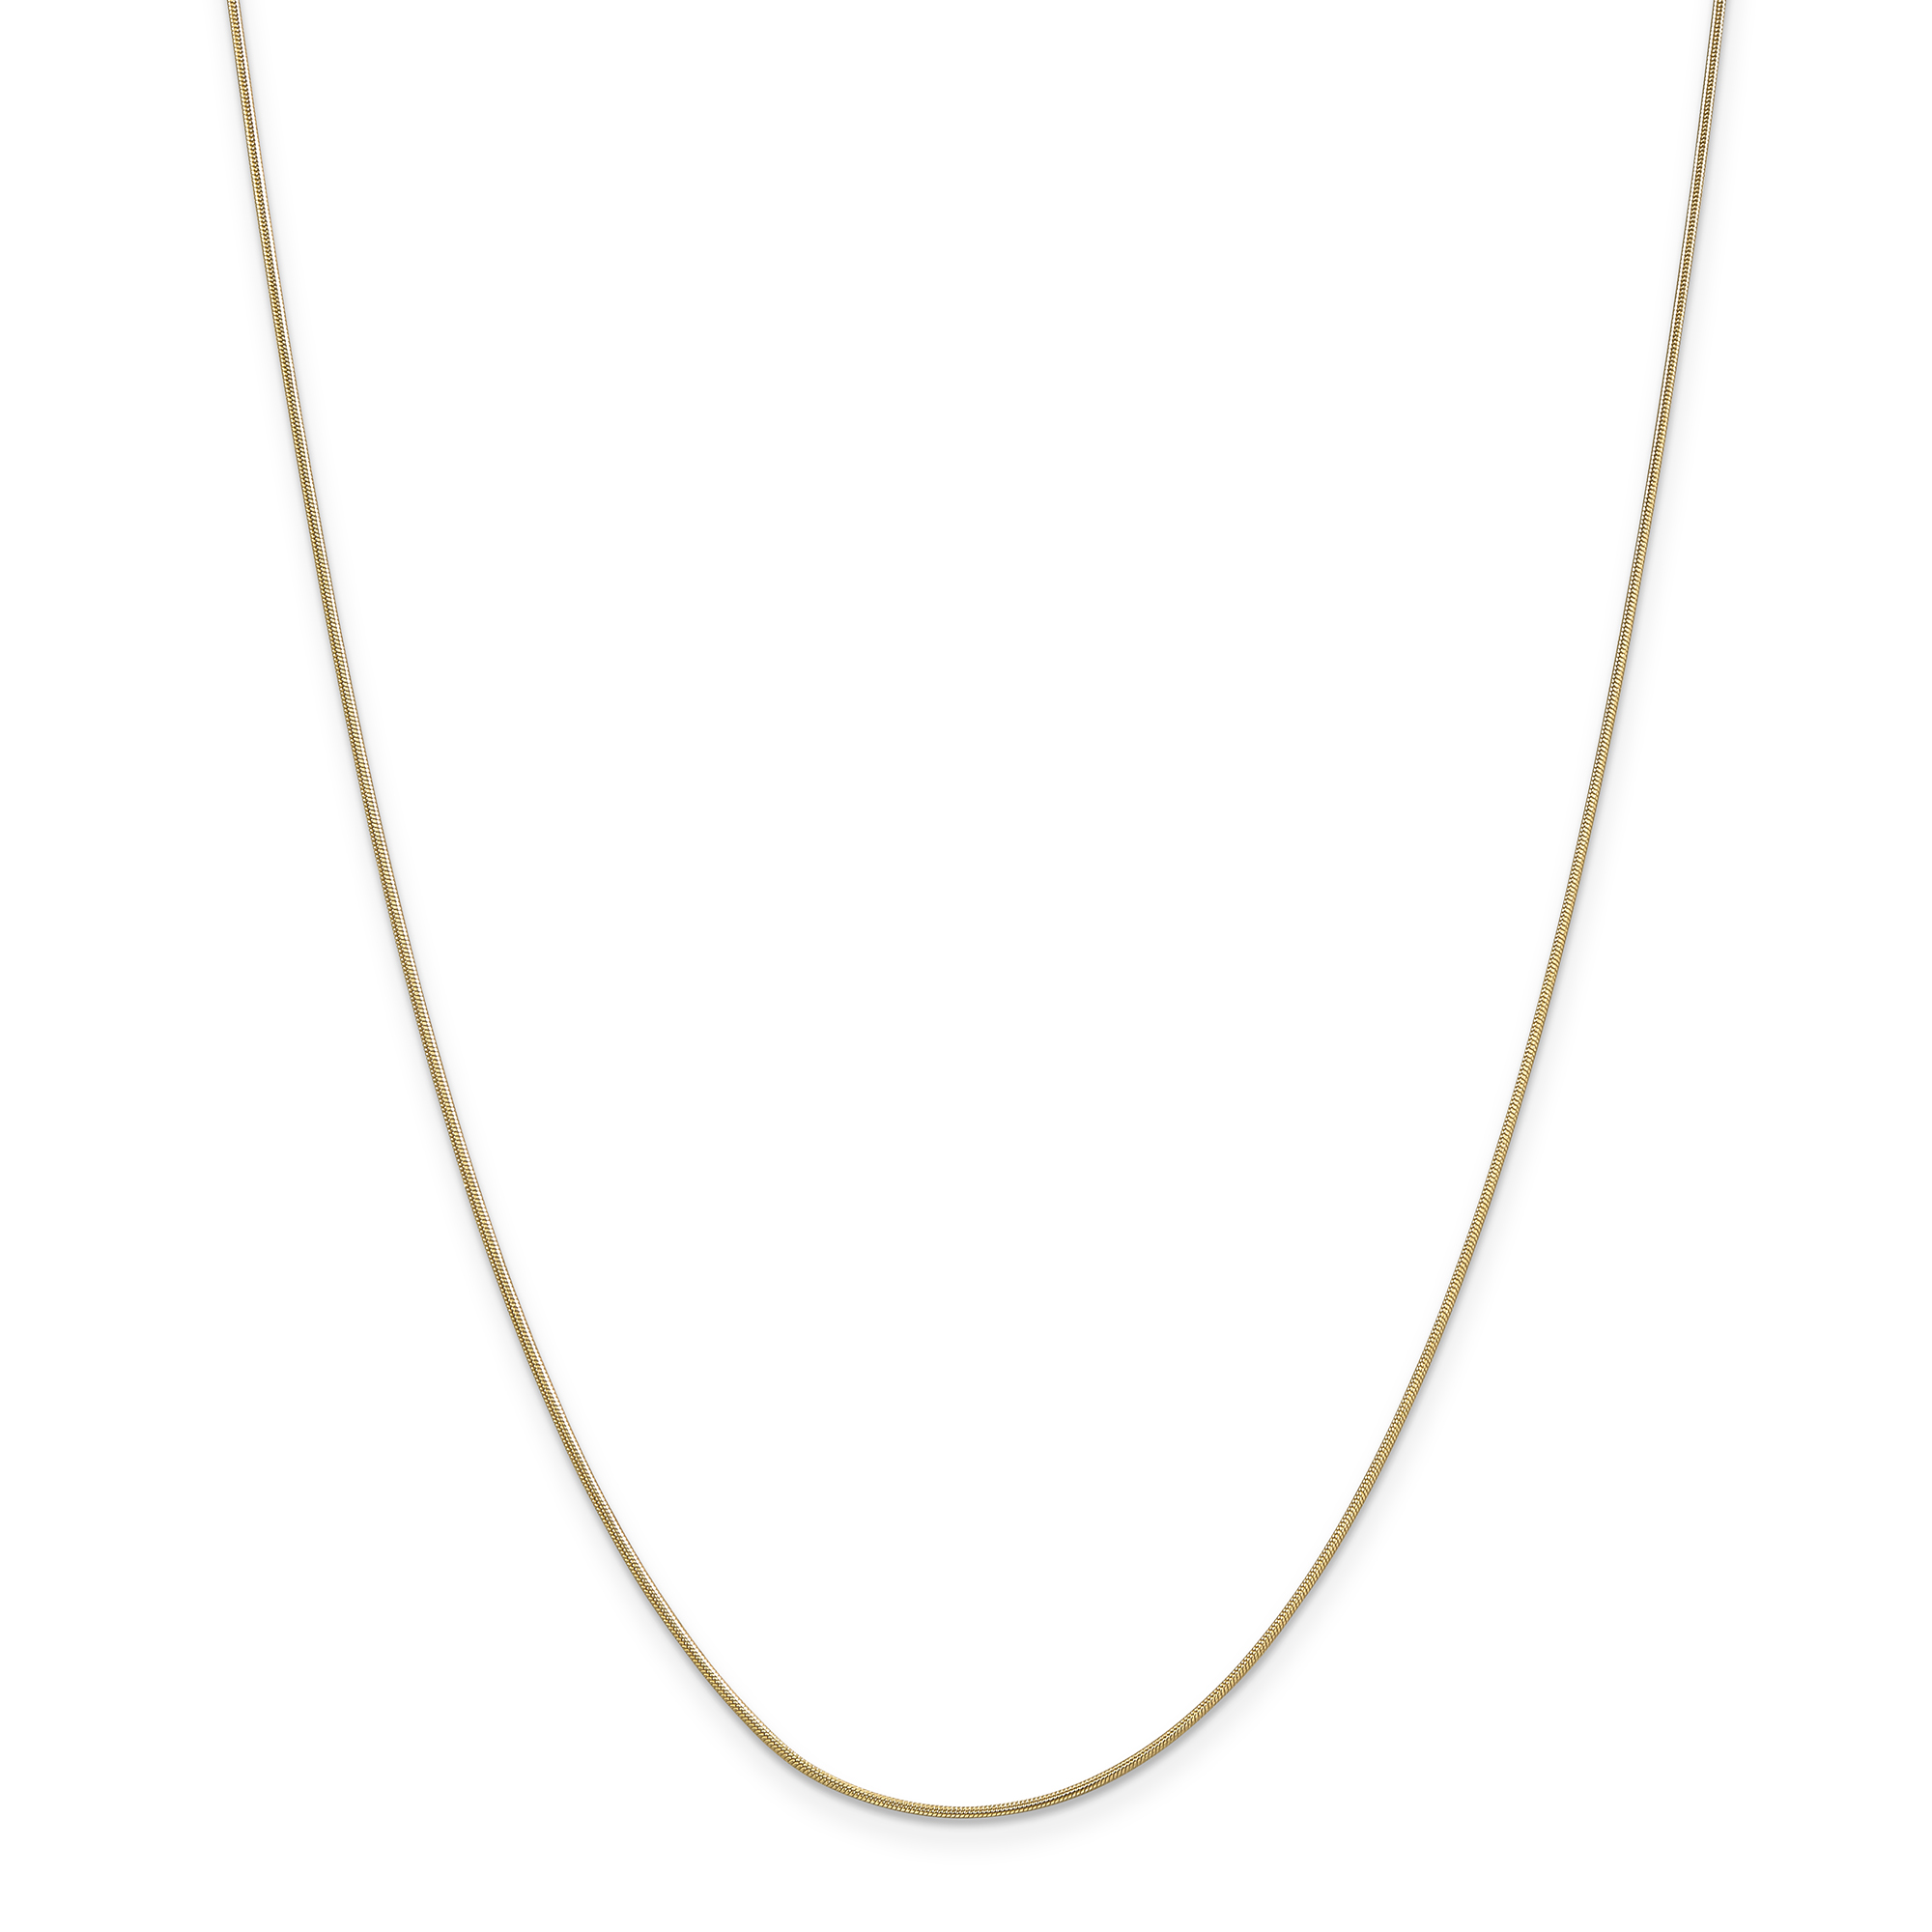 ICE CARATS 14kt Yellow Gold .90mm Round Snake Chain Necklace 16 Inch Pendant Charm Fine Jewelry Ideal Gifts For Women Gift Set From Heart